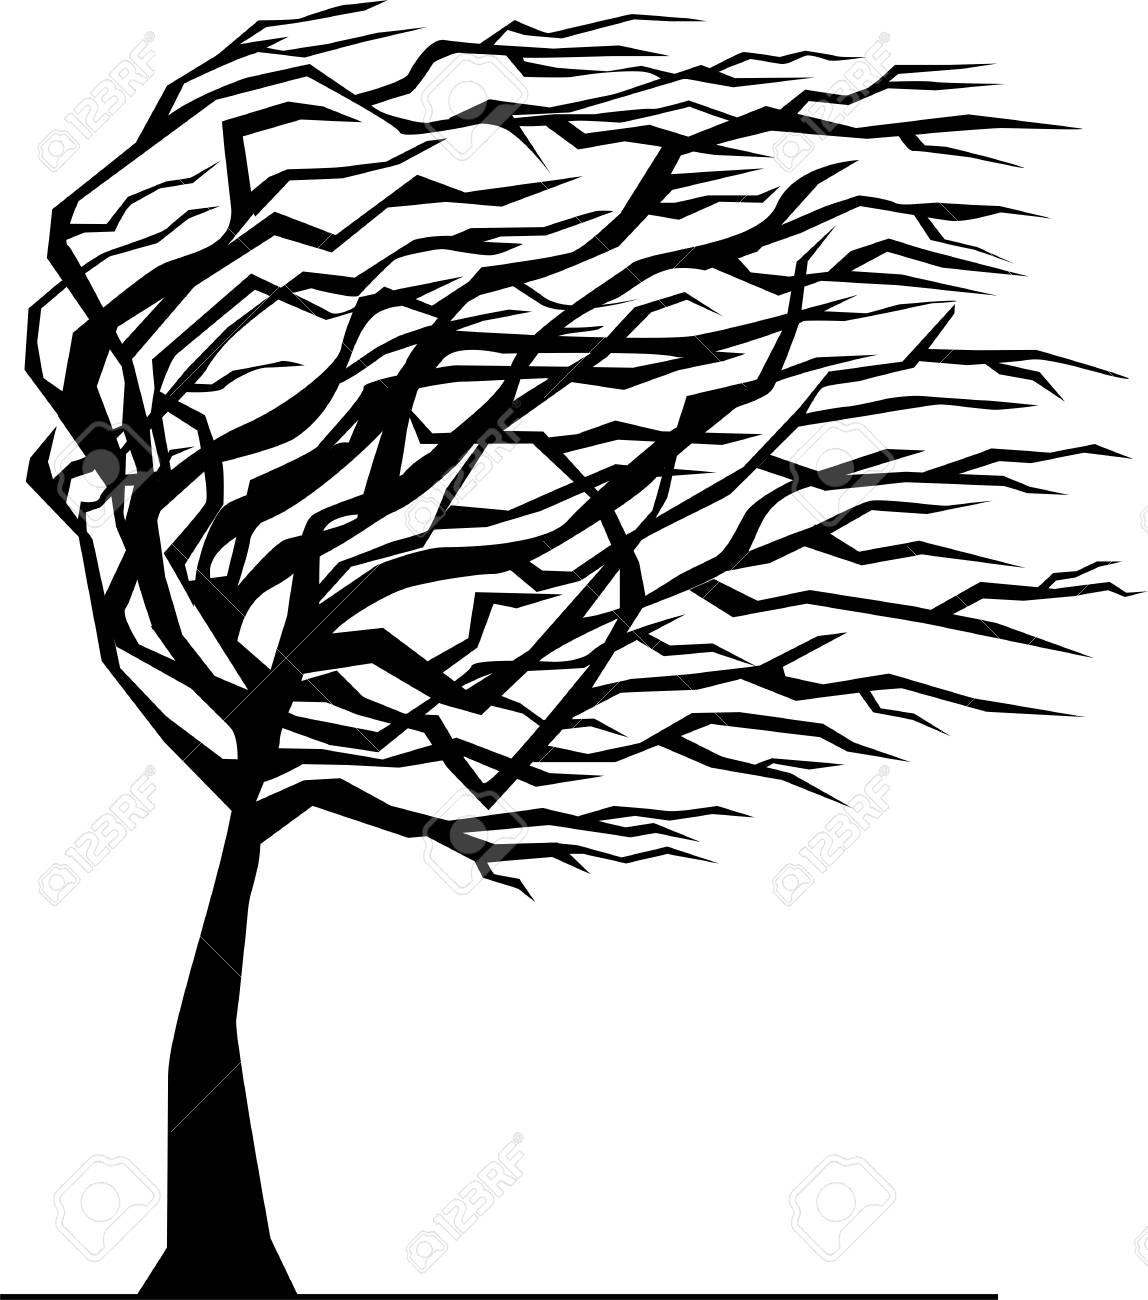 Silhouette of a tree by the wind.